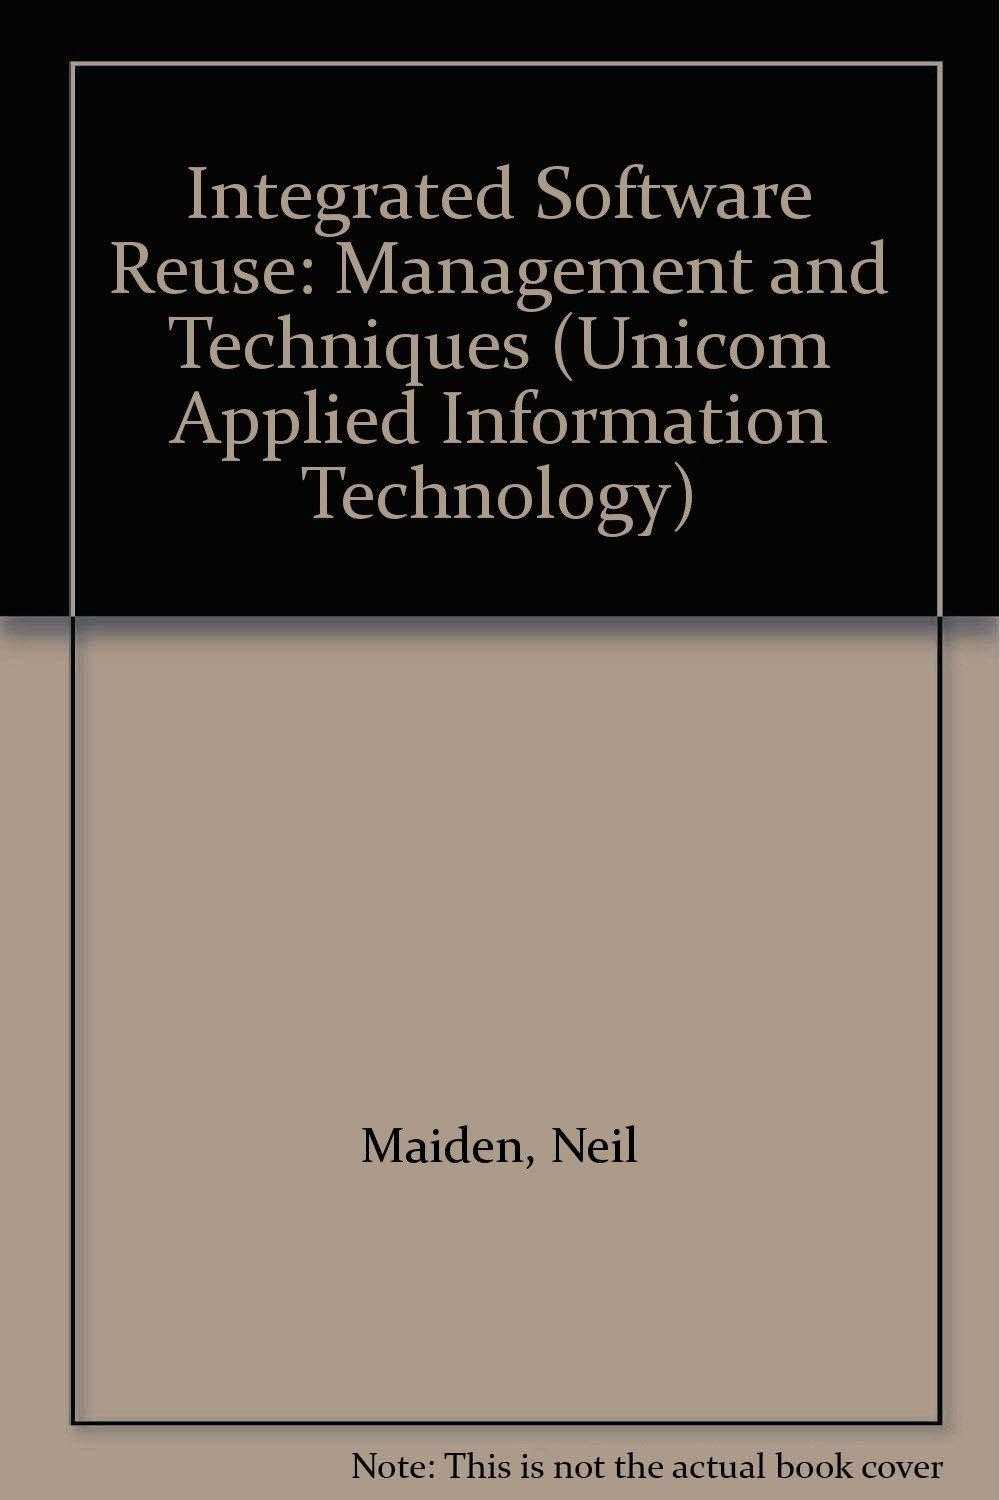 Integrated Software Reuse: Management and Techniques (UNICOM Applied Informat., Maiden, Neil (Editor)